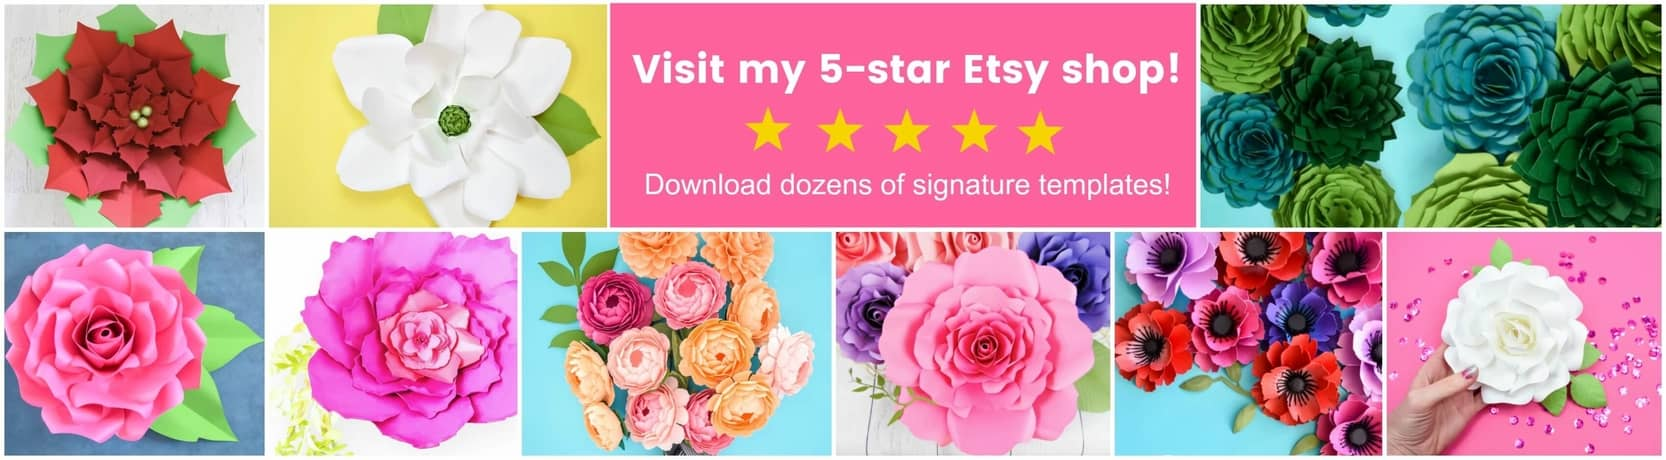 Visit my Etsy Shop call-to-action